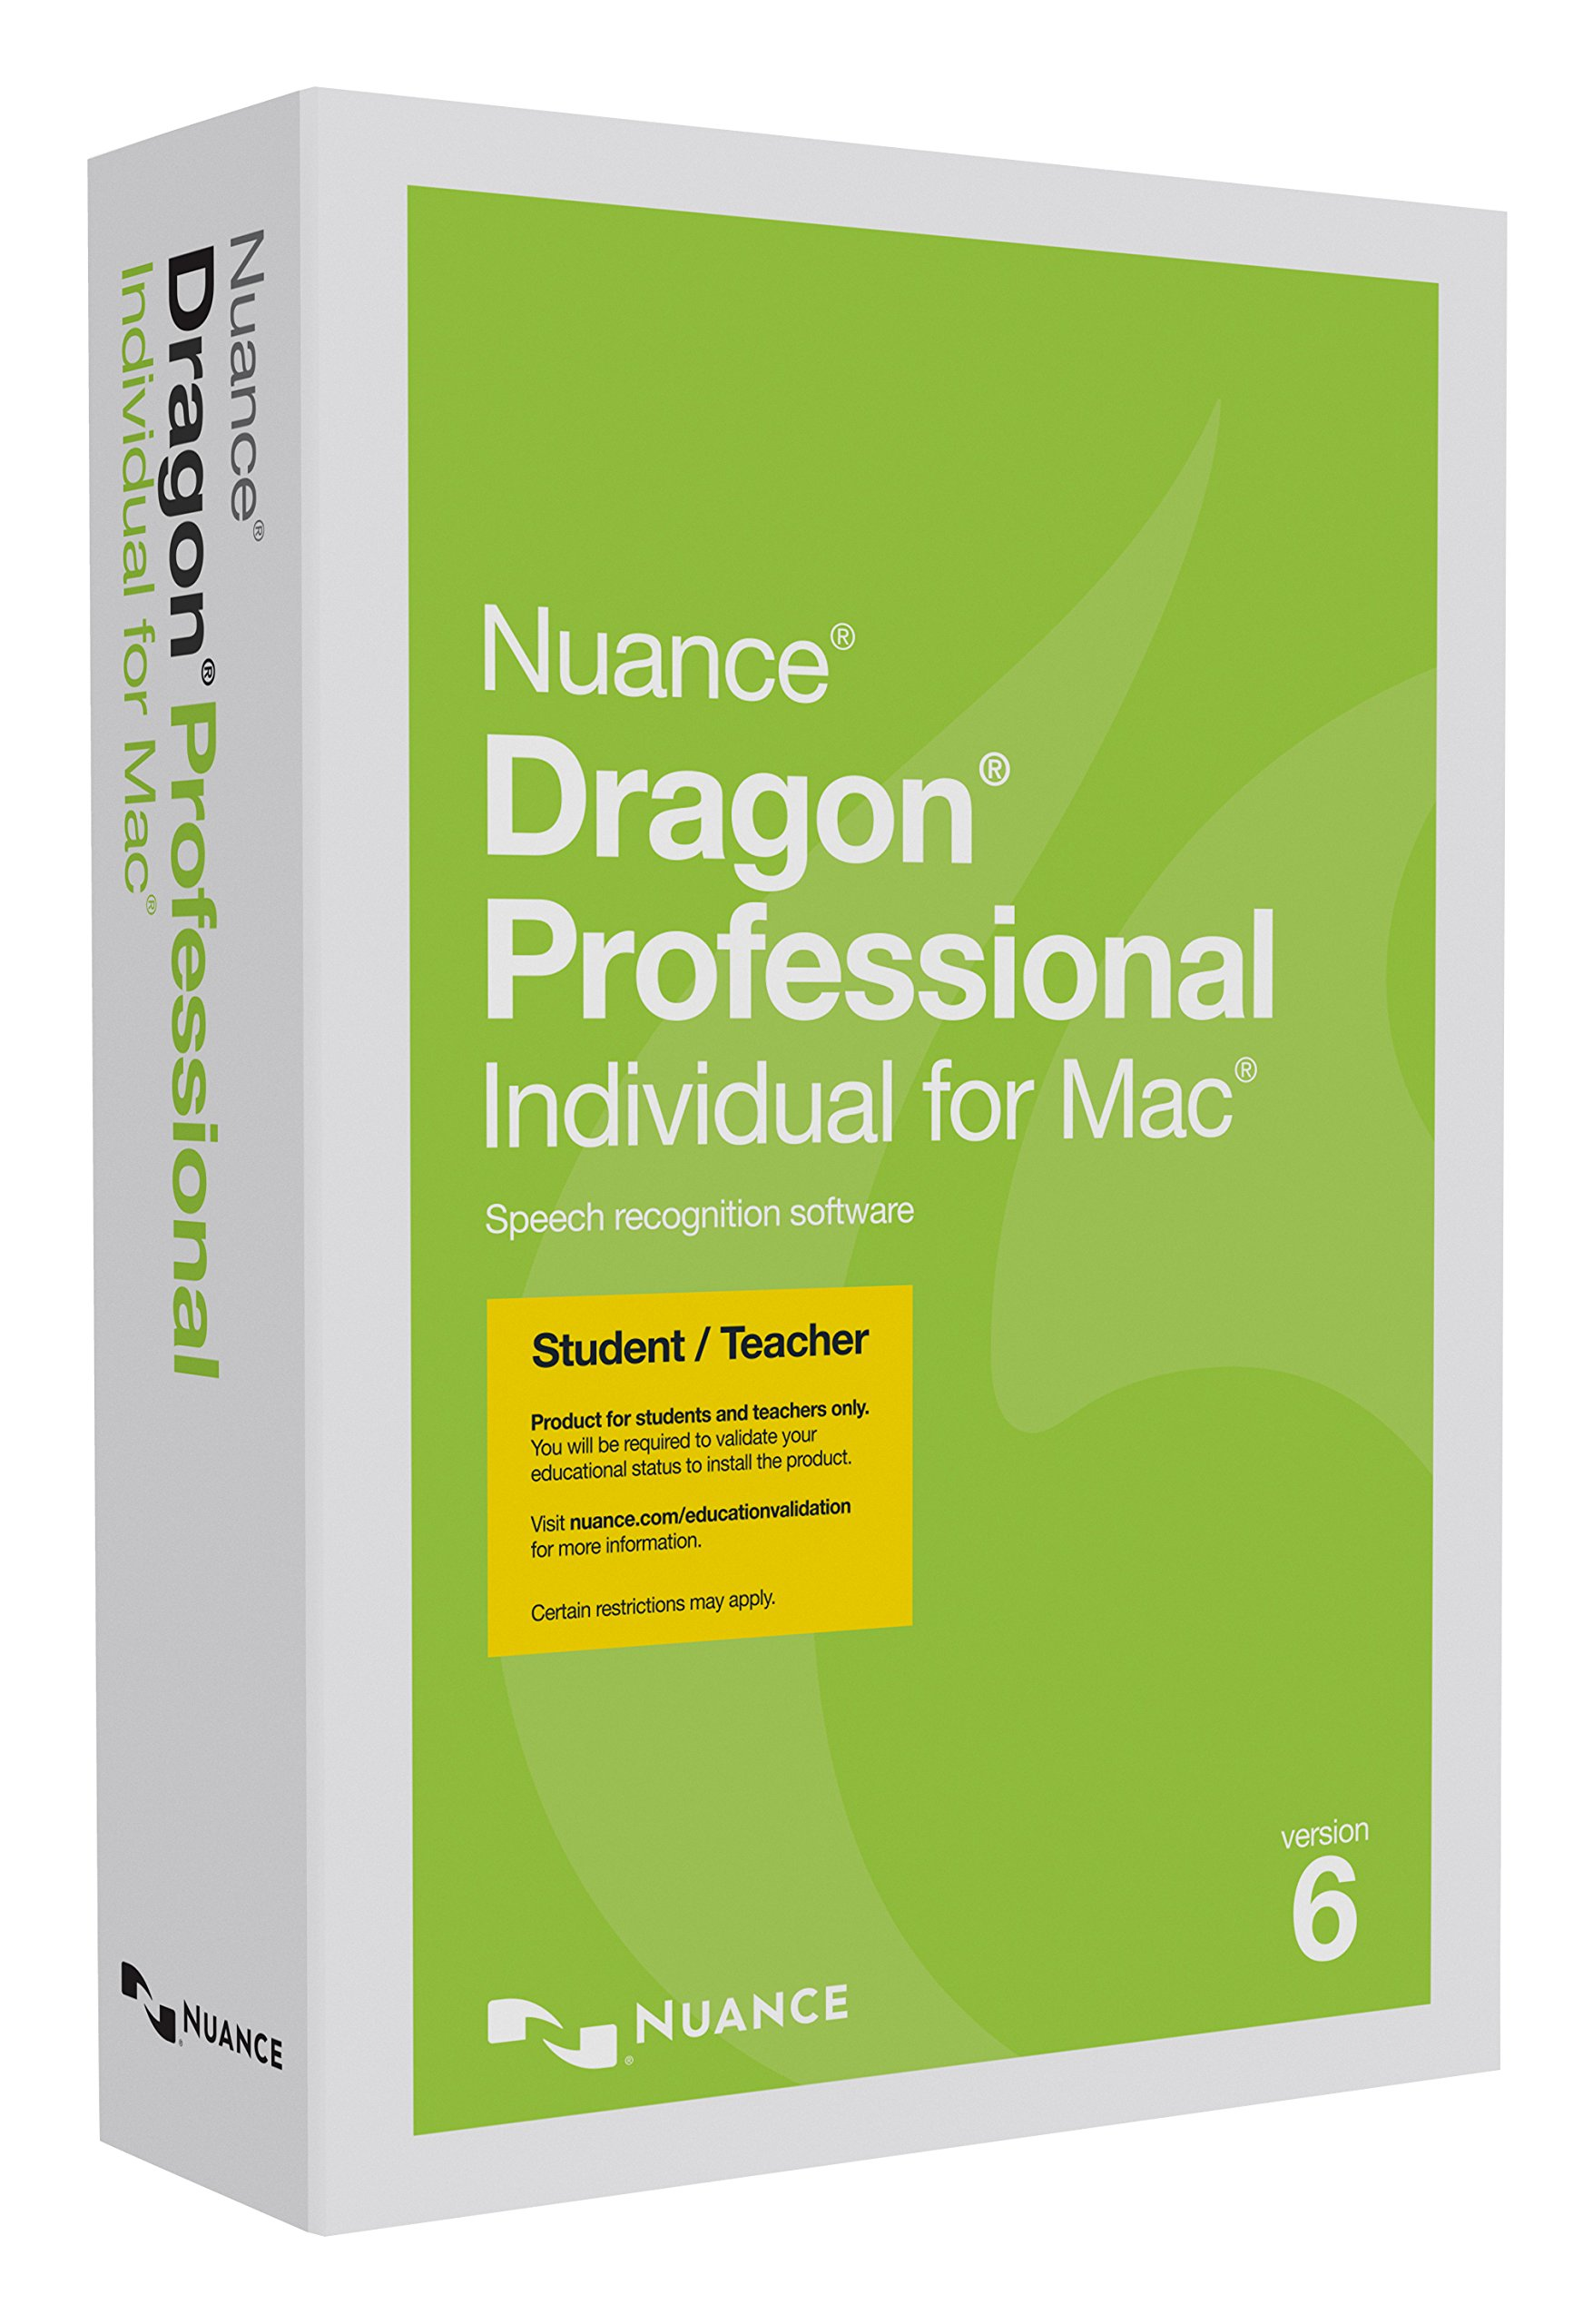 Dragon Professional Individual for Mac 6.0, Student/Teacher Edition (Discontinued) by Nuance Dragon